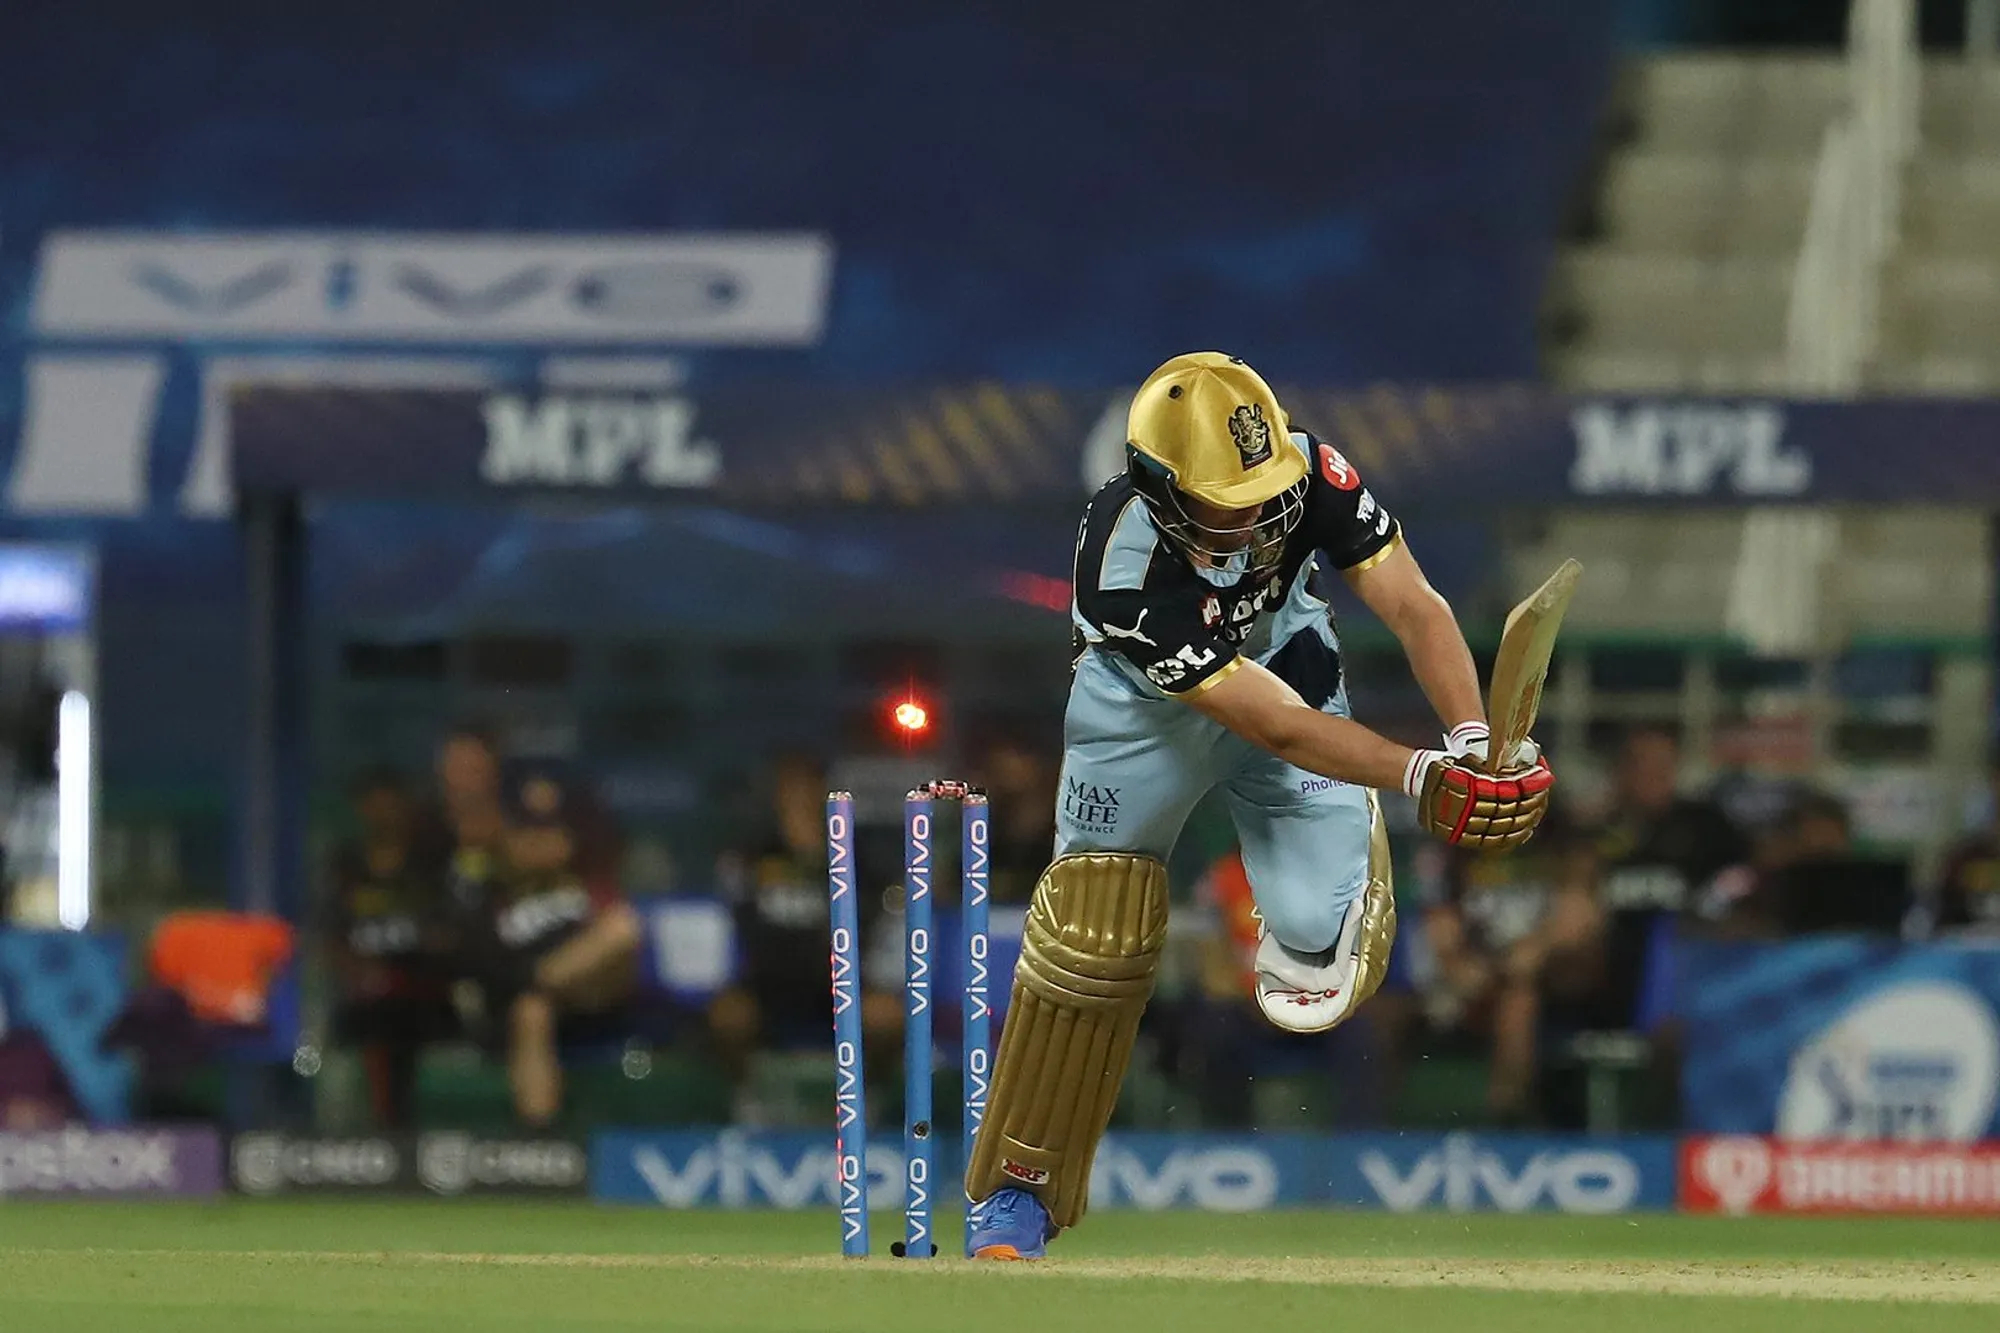 AB de Villiers was bowled for a golden duck as RCB managed just 92 runs | BCCI-IPL